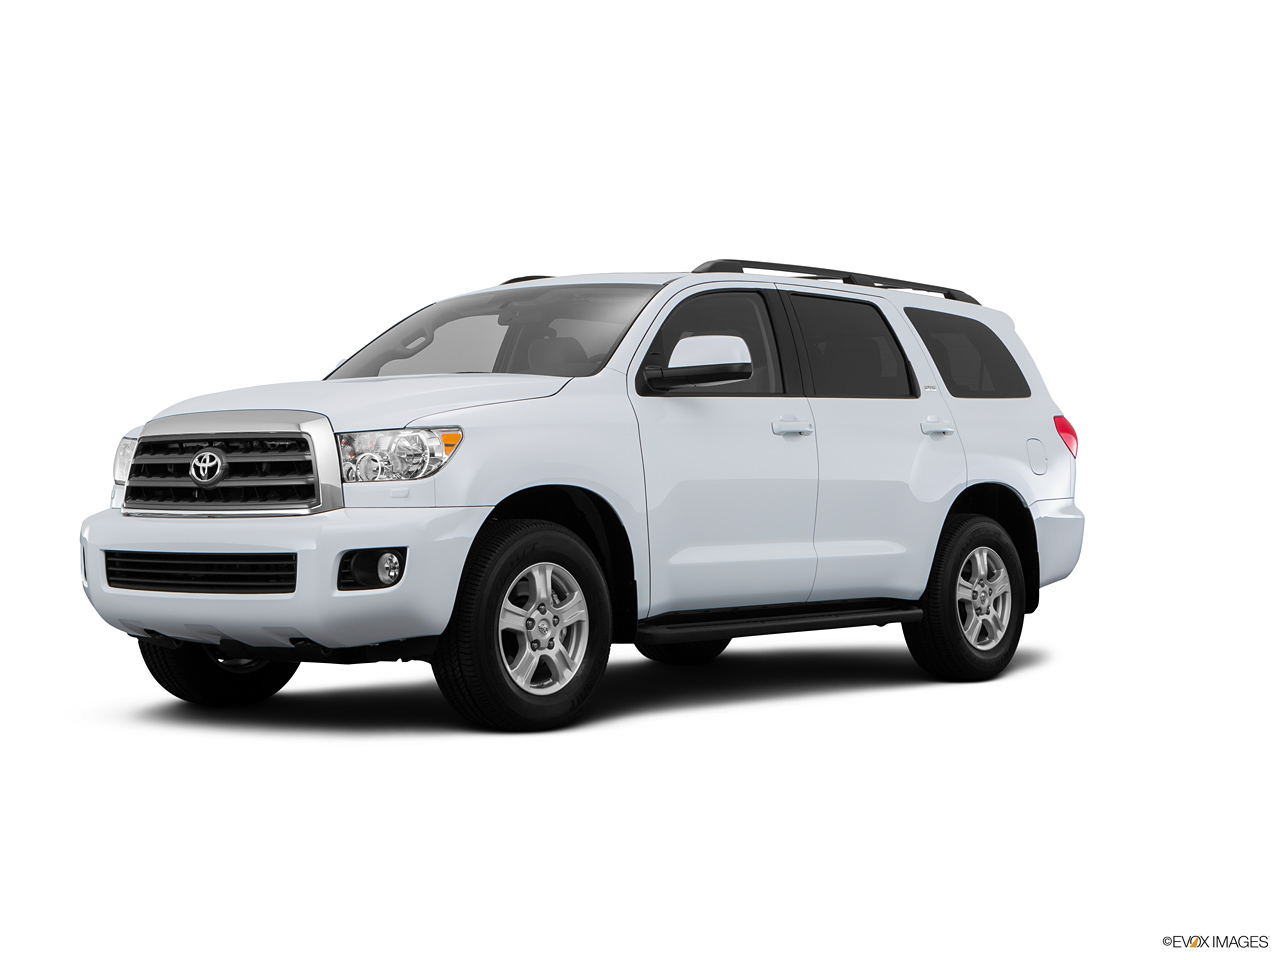 toyota sequoia 2017 5 7l sr5 moon roof in uae new car prices specs reviews photos yallamotor. Black Bedroom Furniture Sets. Home Design Ideas